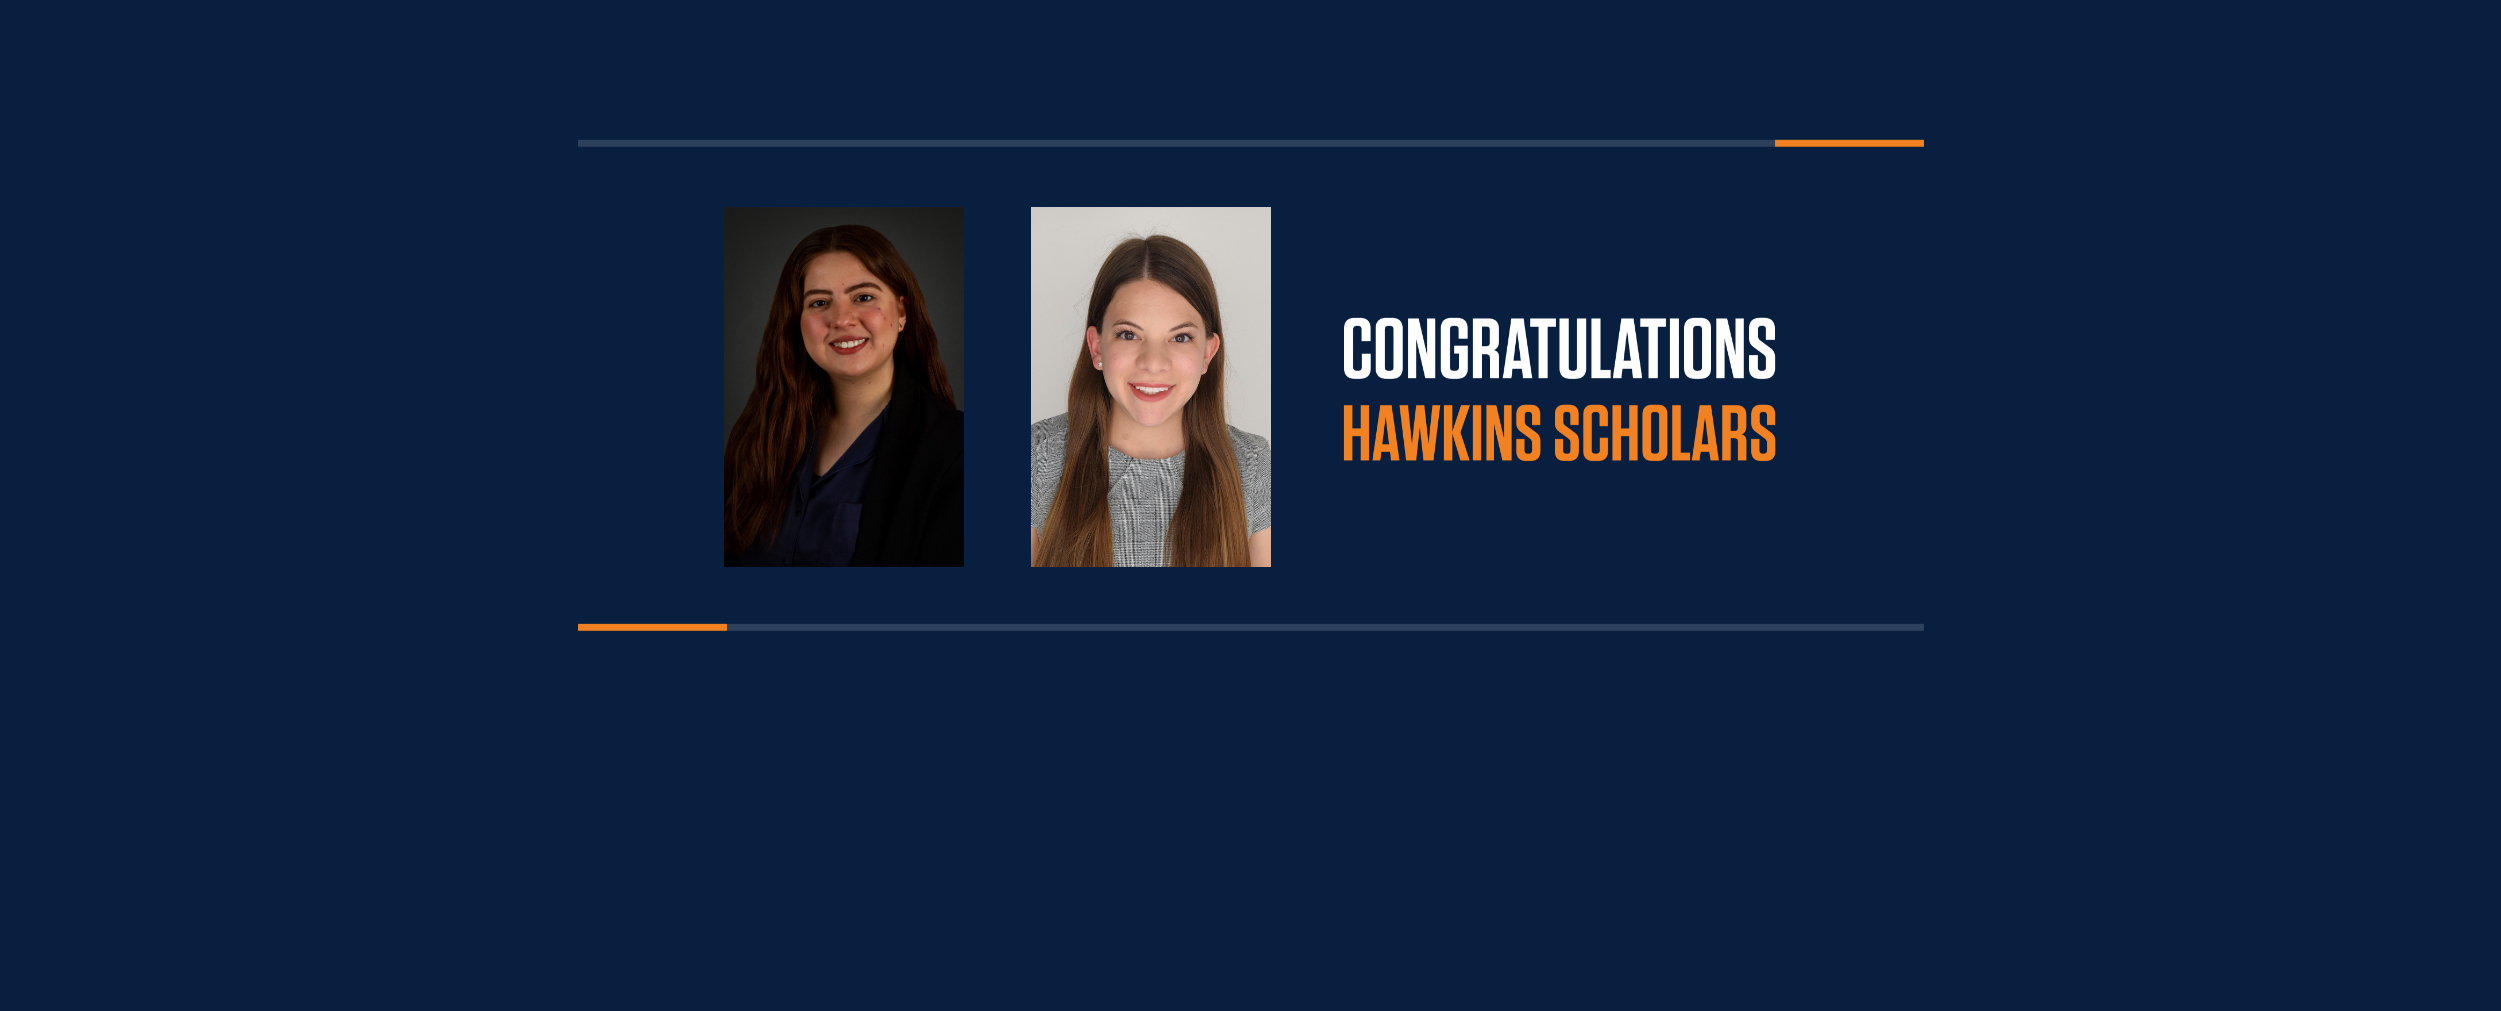 UTEP Names Winners of Inaugural Hawkins Scholarship